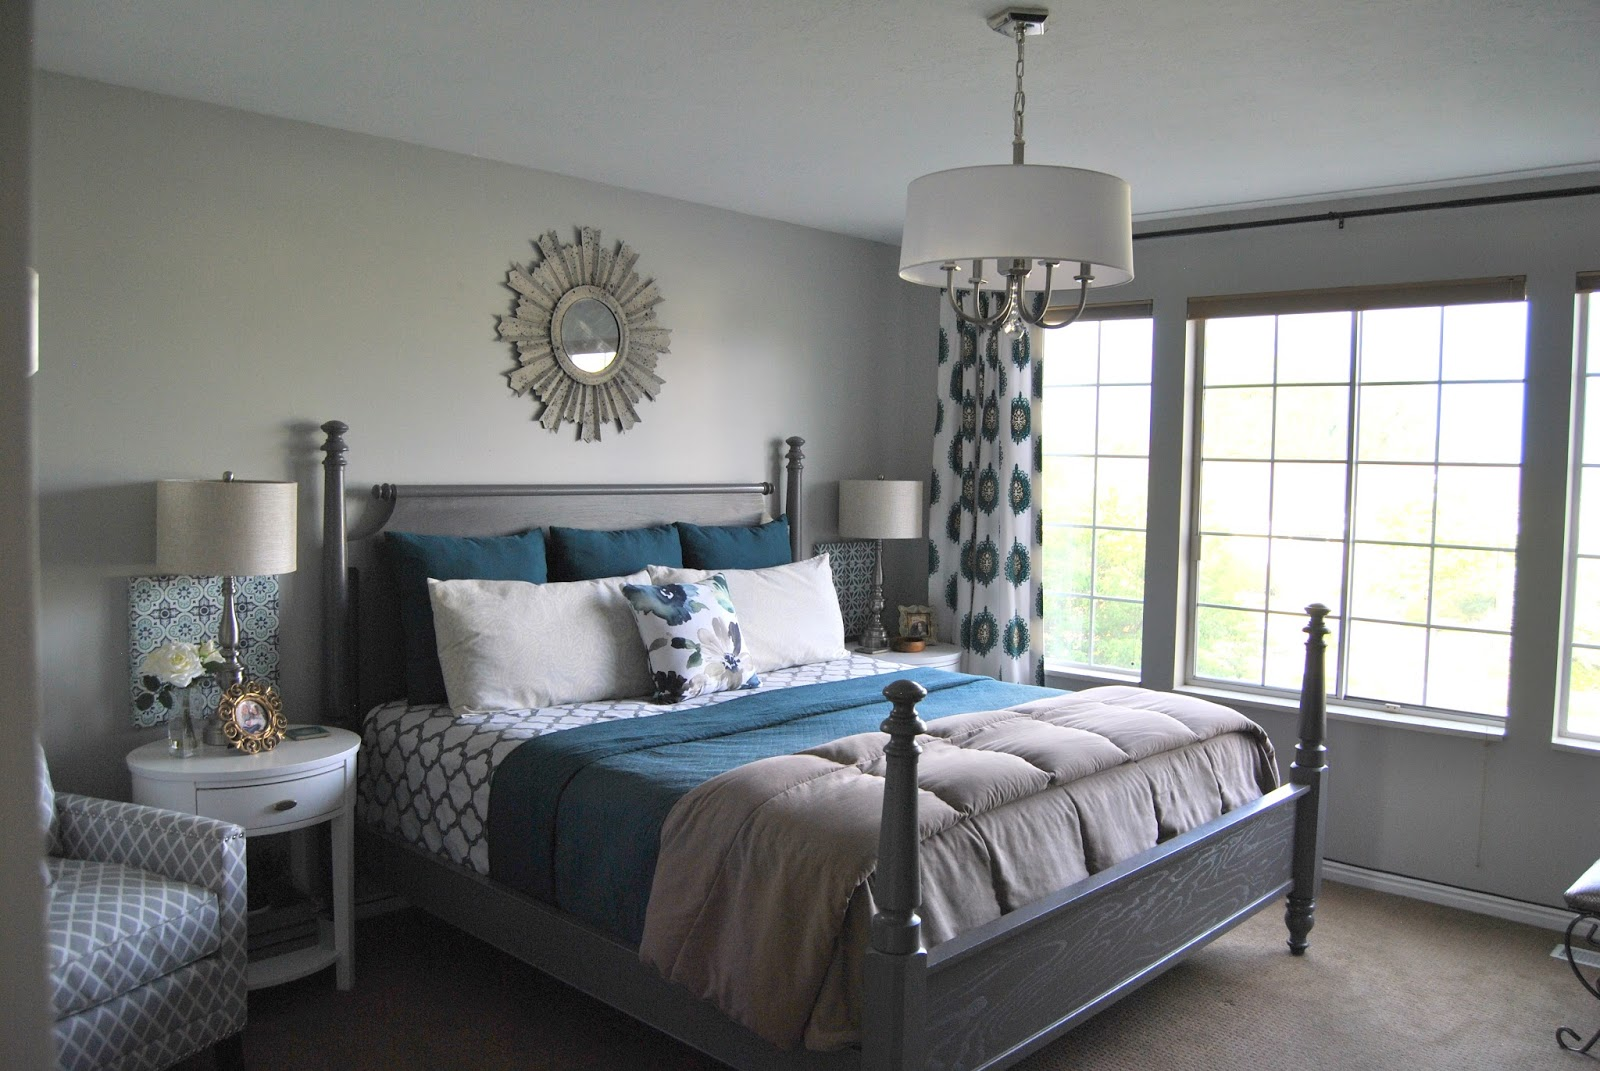 Studio 7 Interior Design: Room Reveal: Master Bedroom